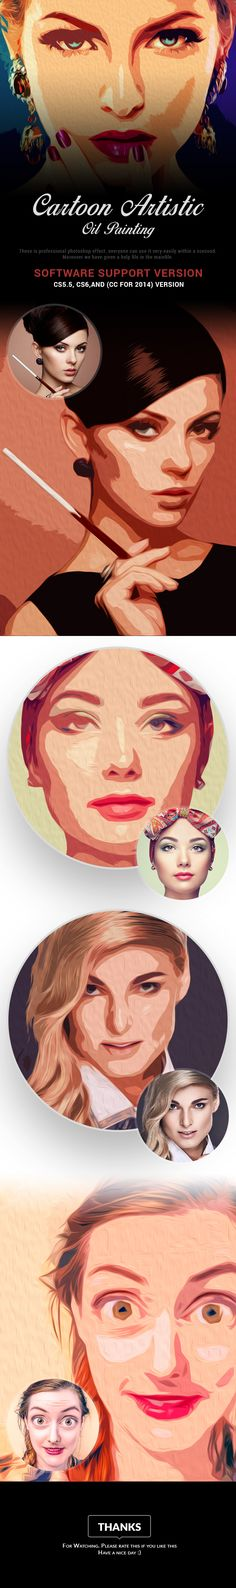 Cartoon Artistic Oil Painting - Photo Effects Actions